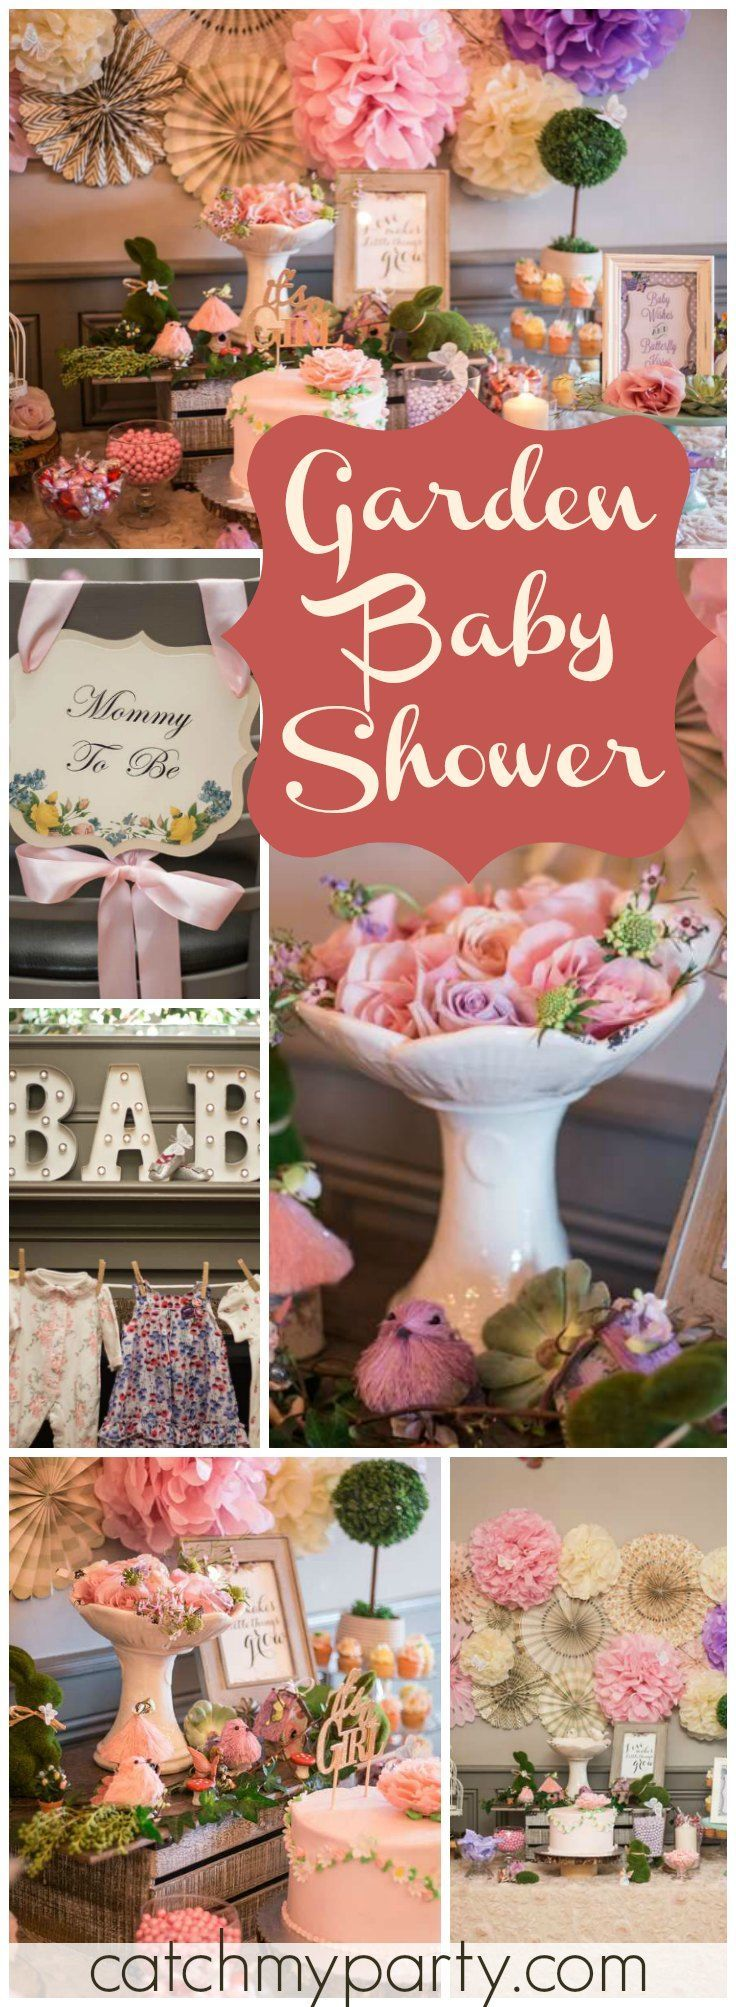 Explore Tea Party Baby Shower And More!